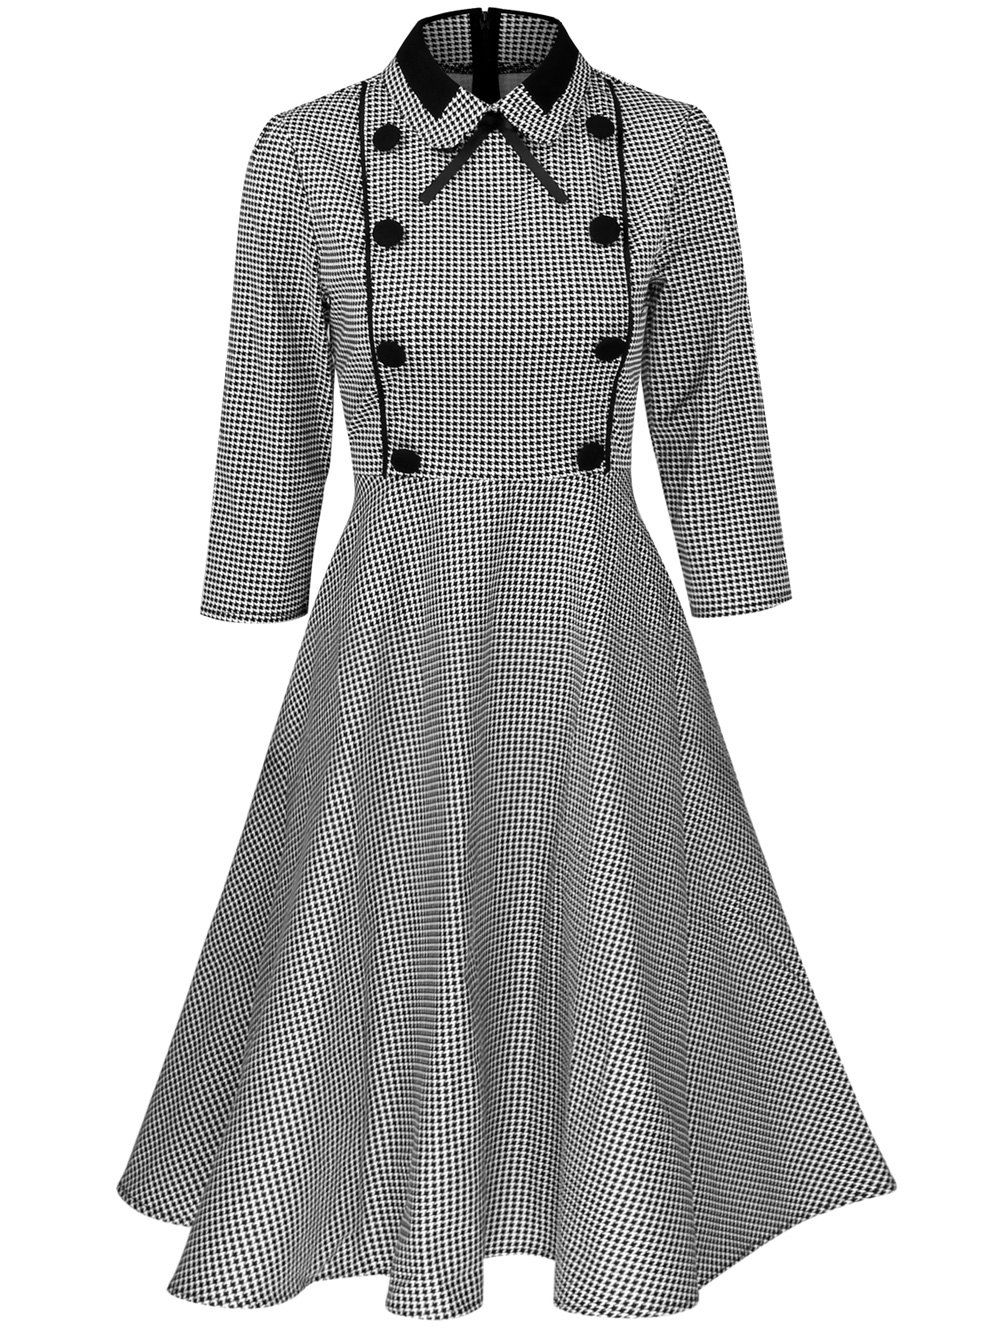 Plus Size Houndstooth Print Vintage Pin Up Dress Houndstooth